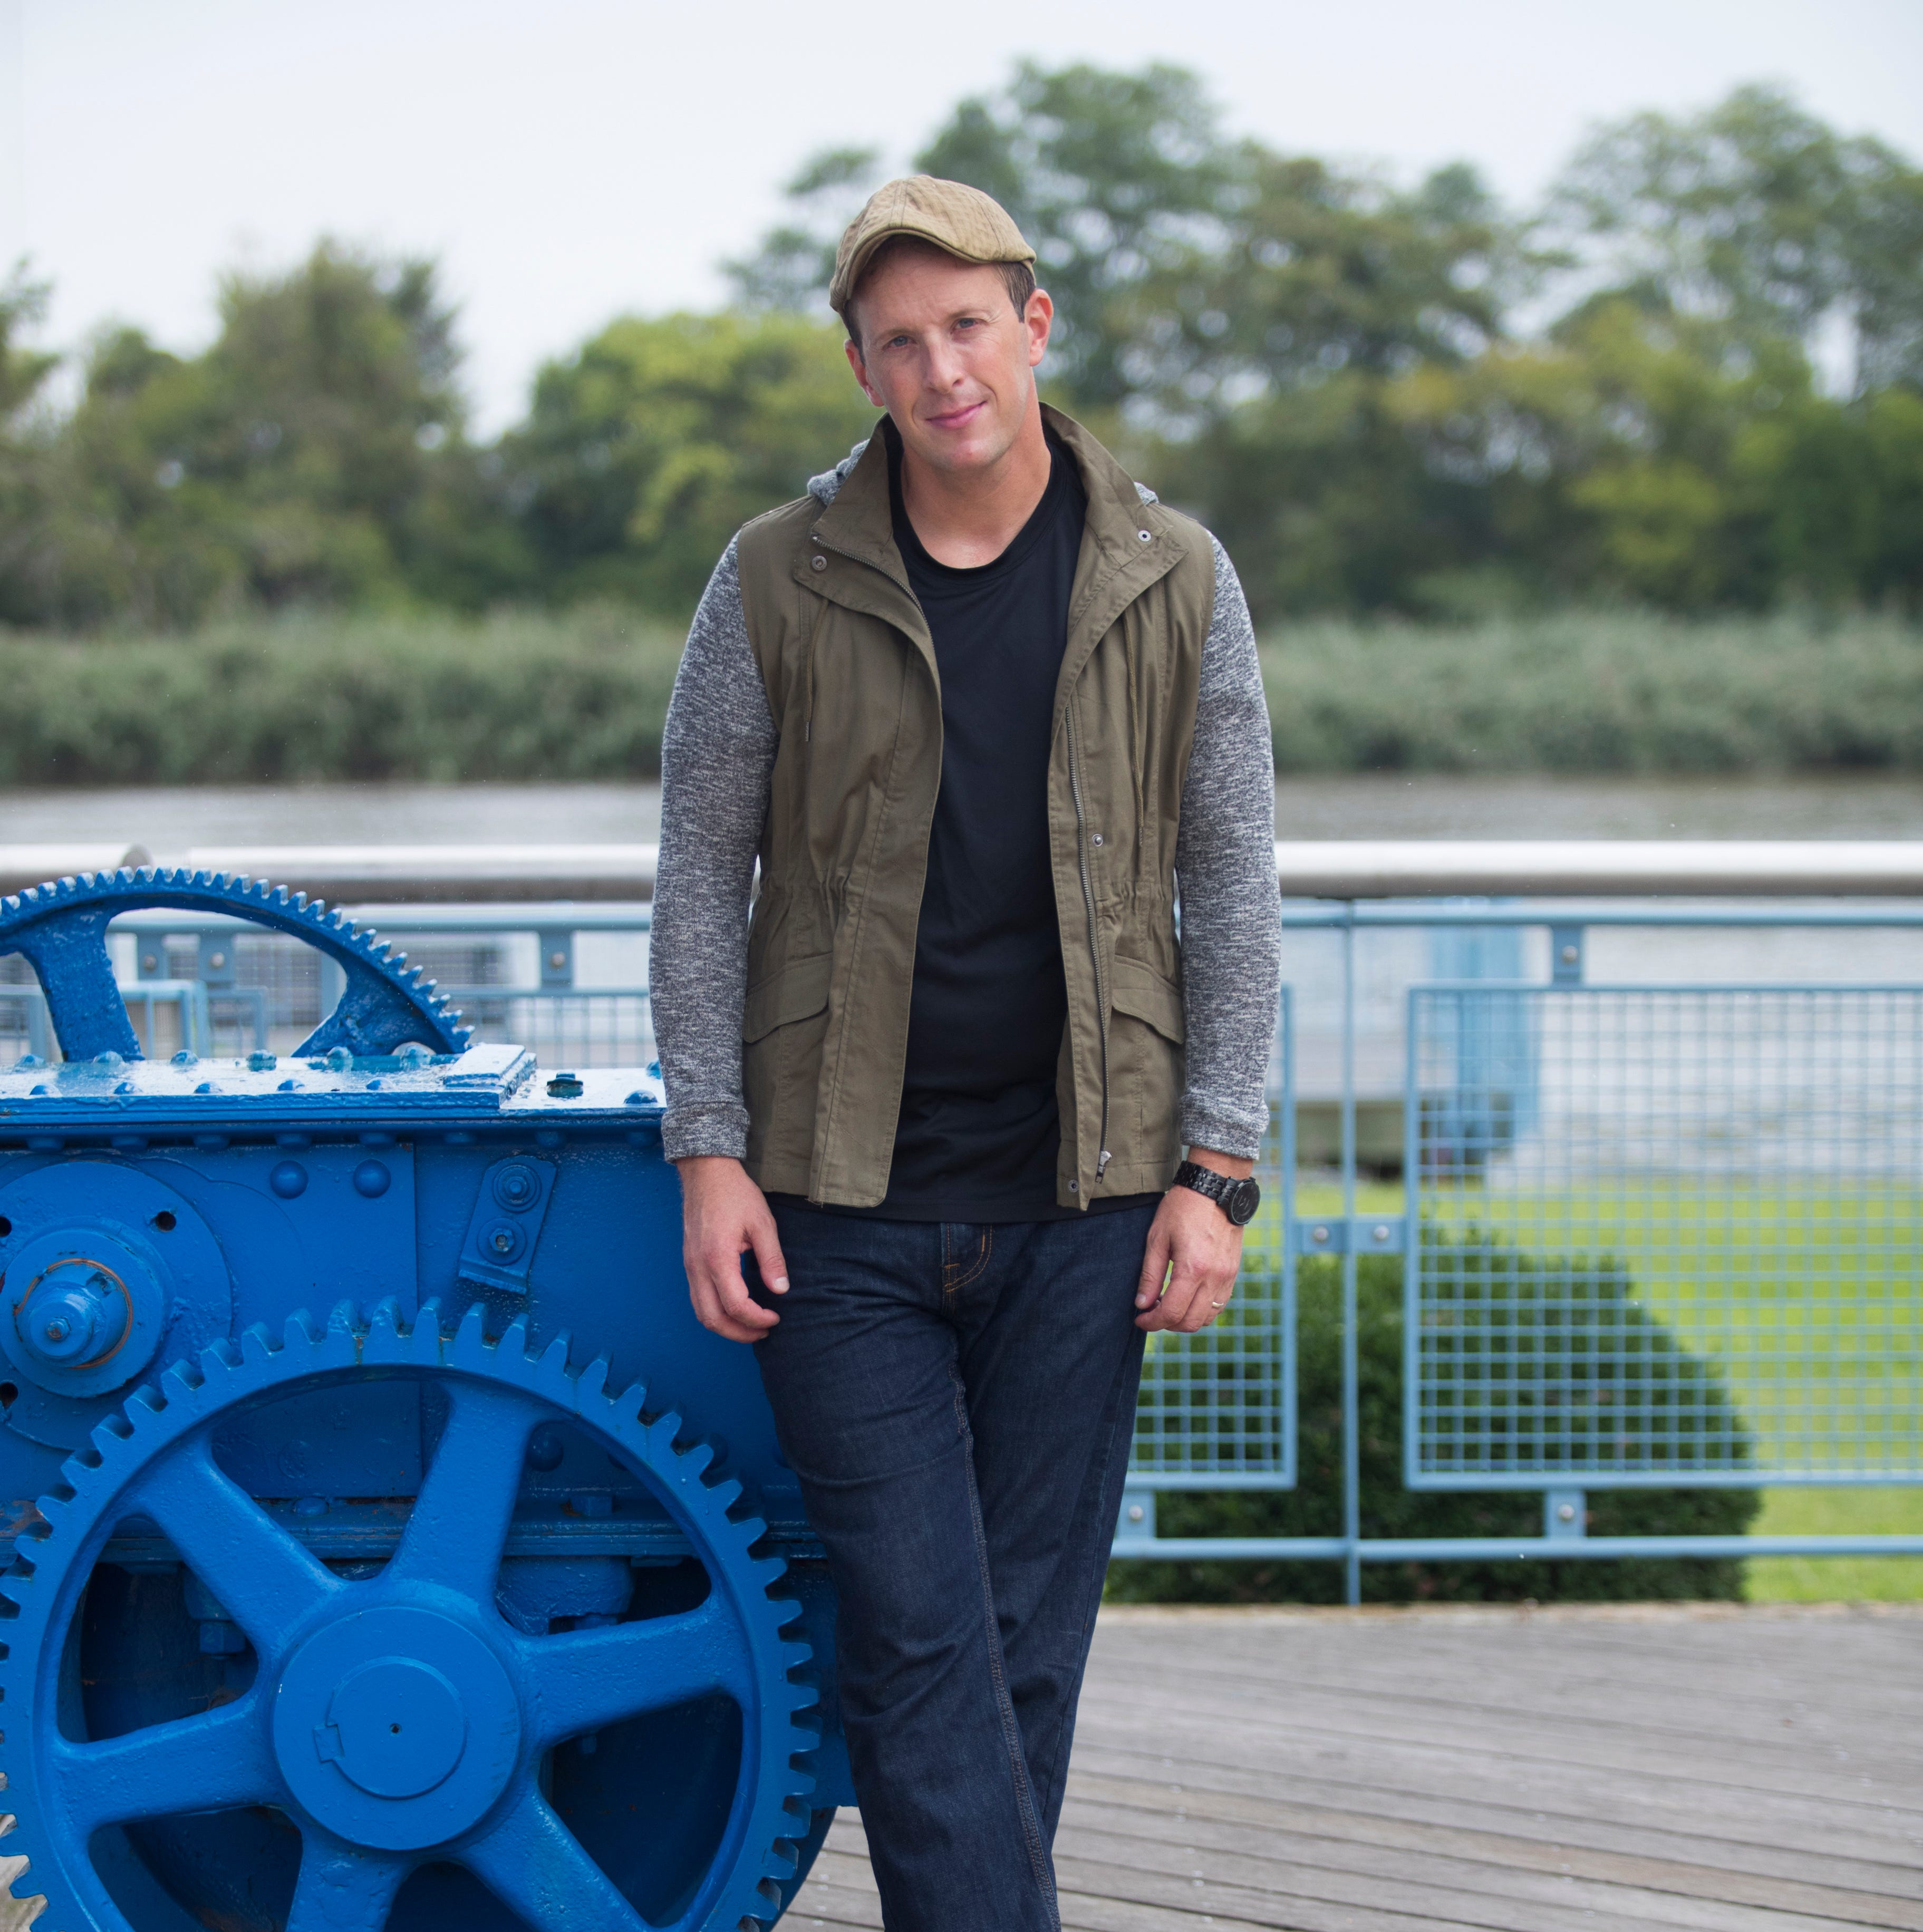 This Delaware actor calls his style 'urban surfer'